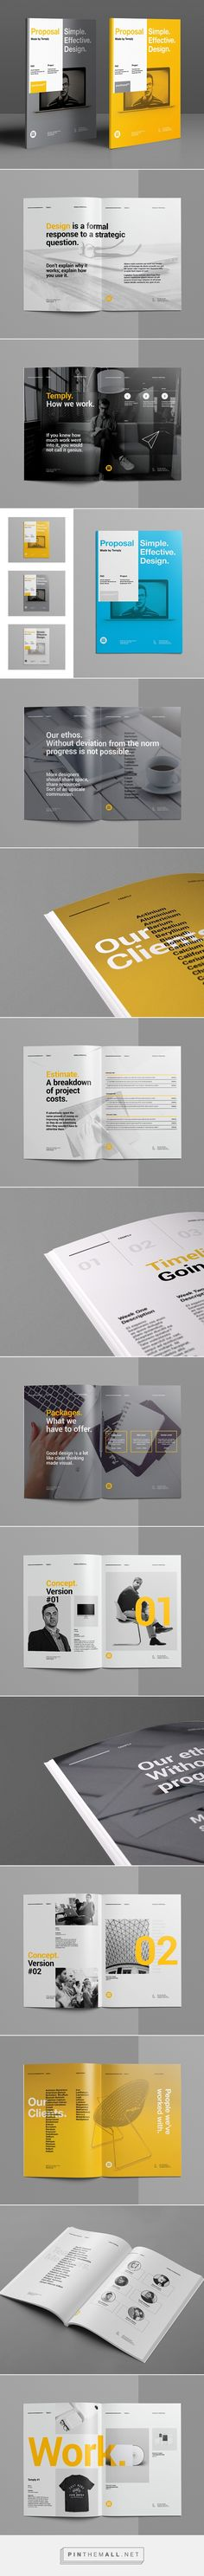 Overlay Proposal #graphicdesign - created via http://pinthemall.net